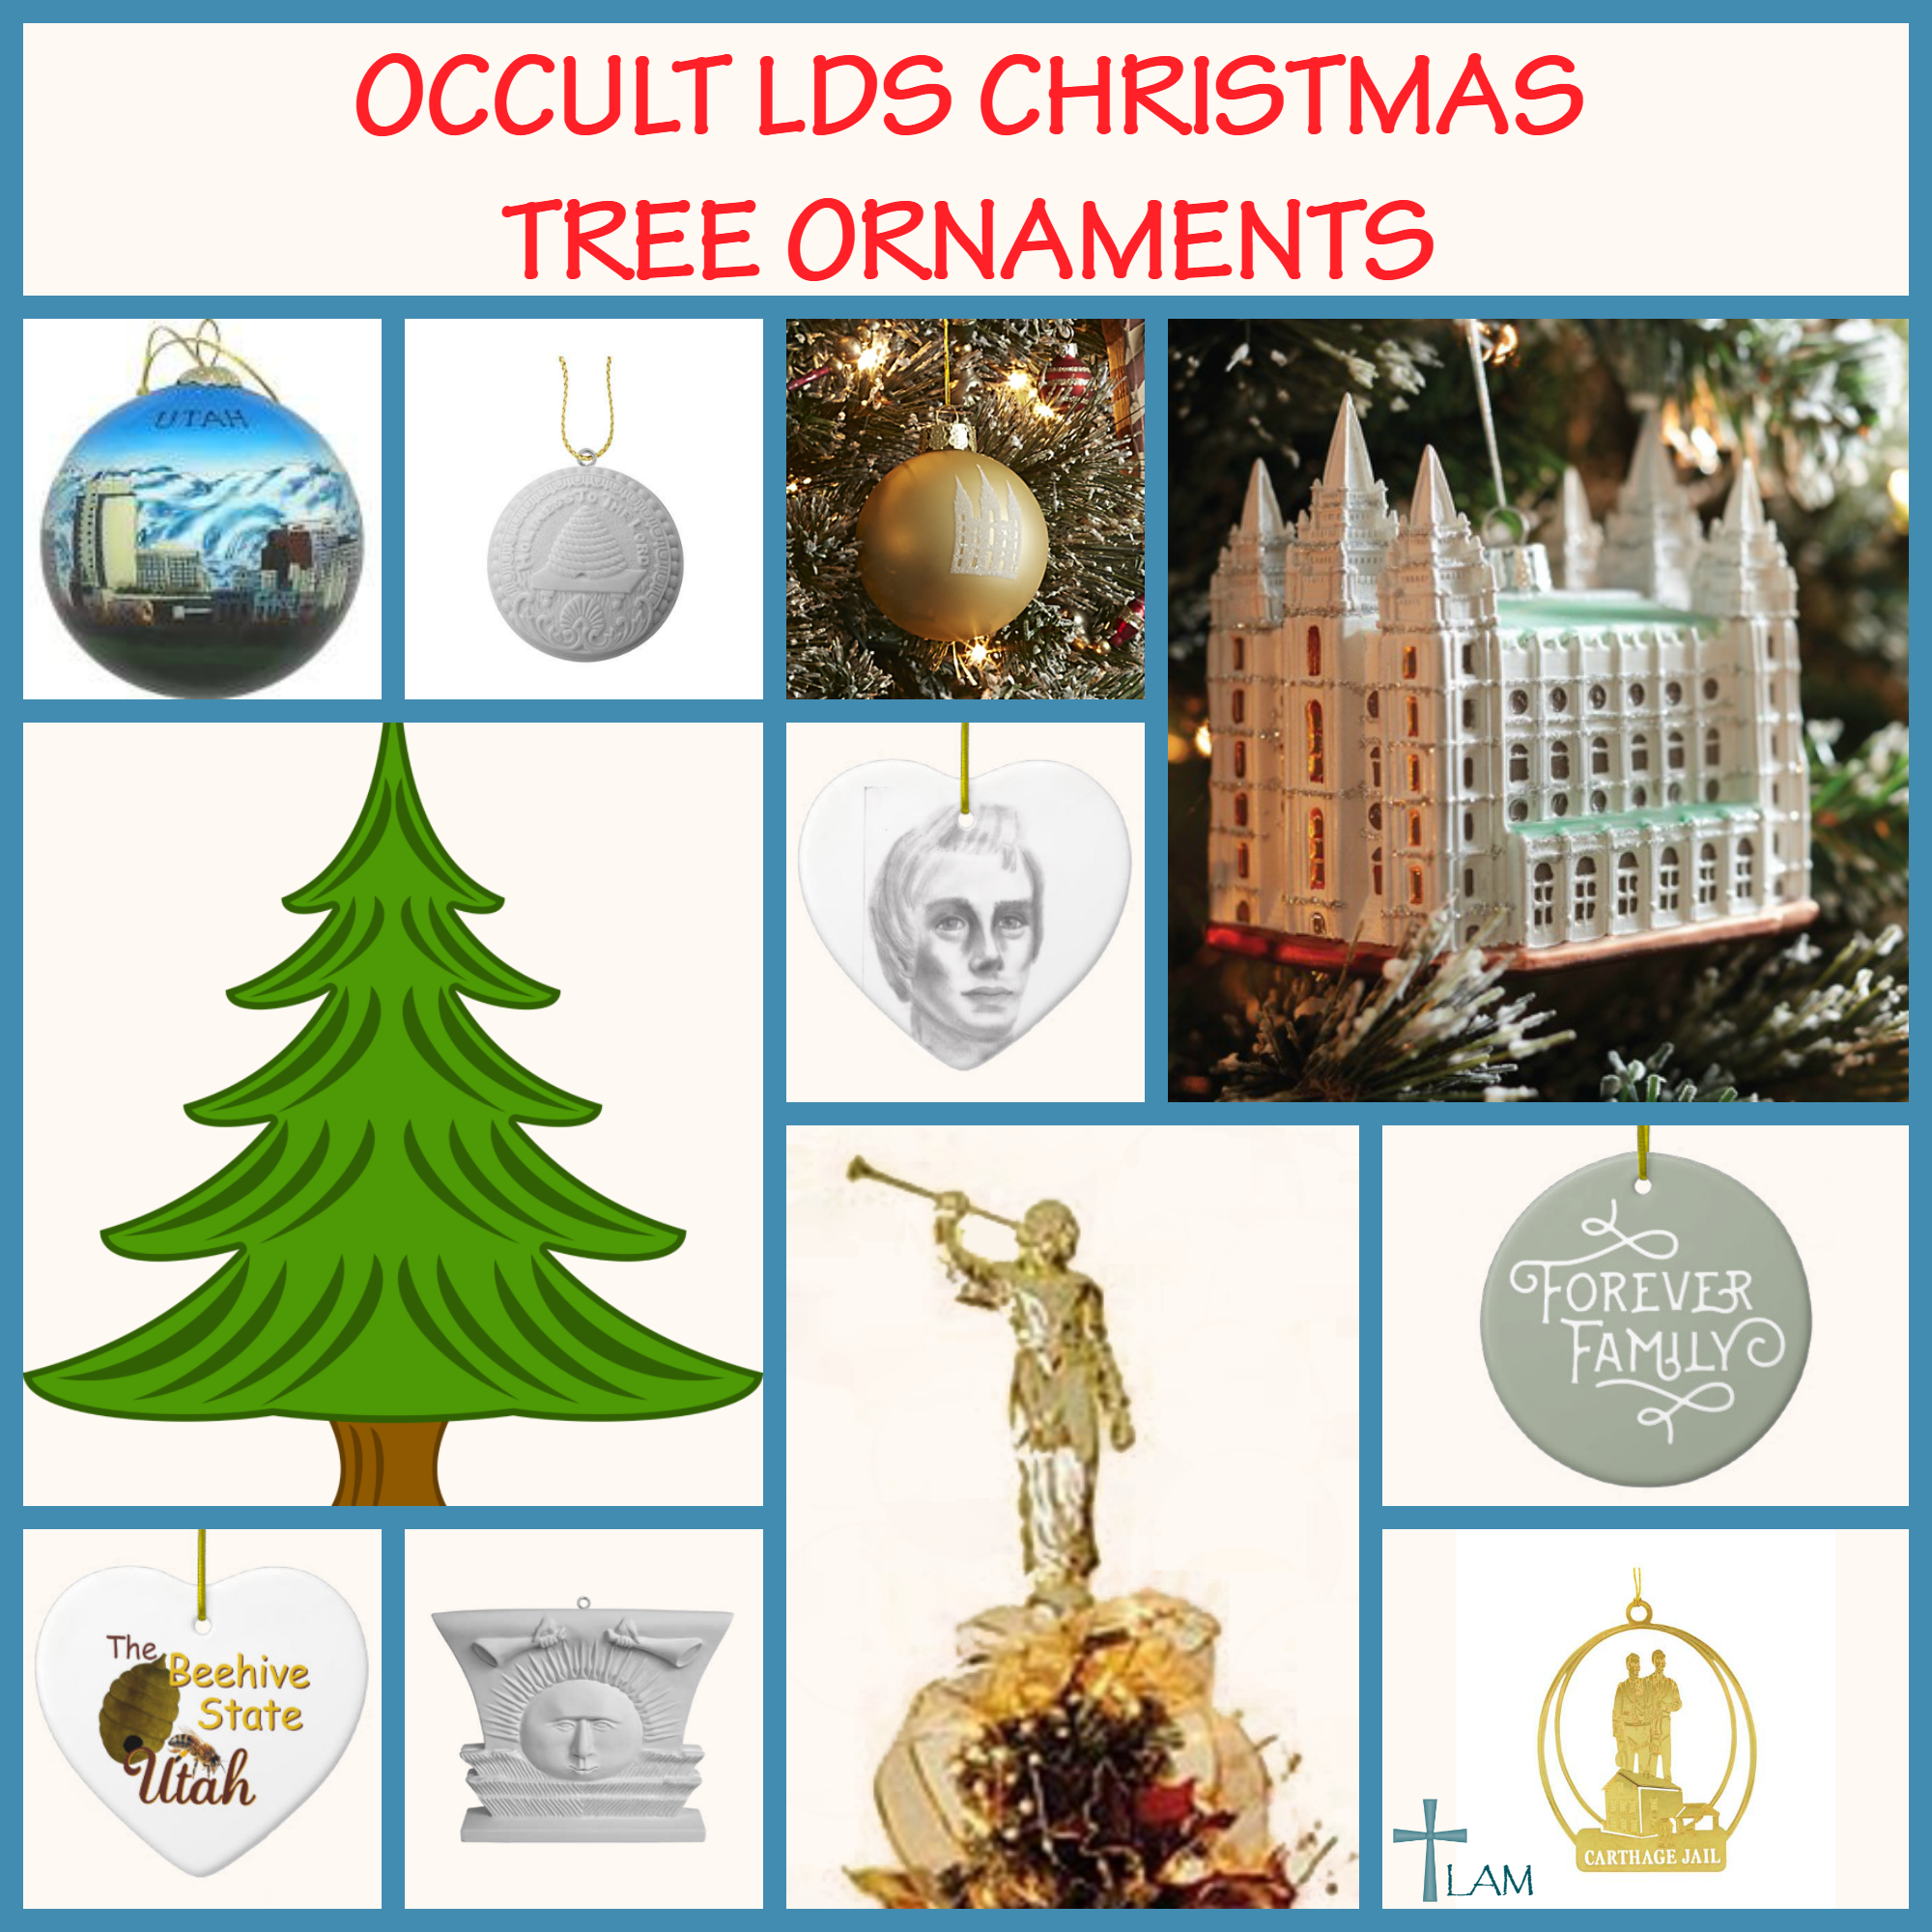 Occult Symbols In Mormonism Sold As Christmas Ornaments Life After